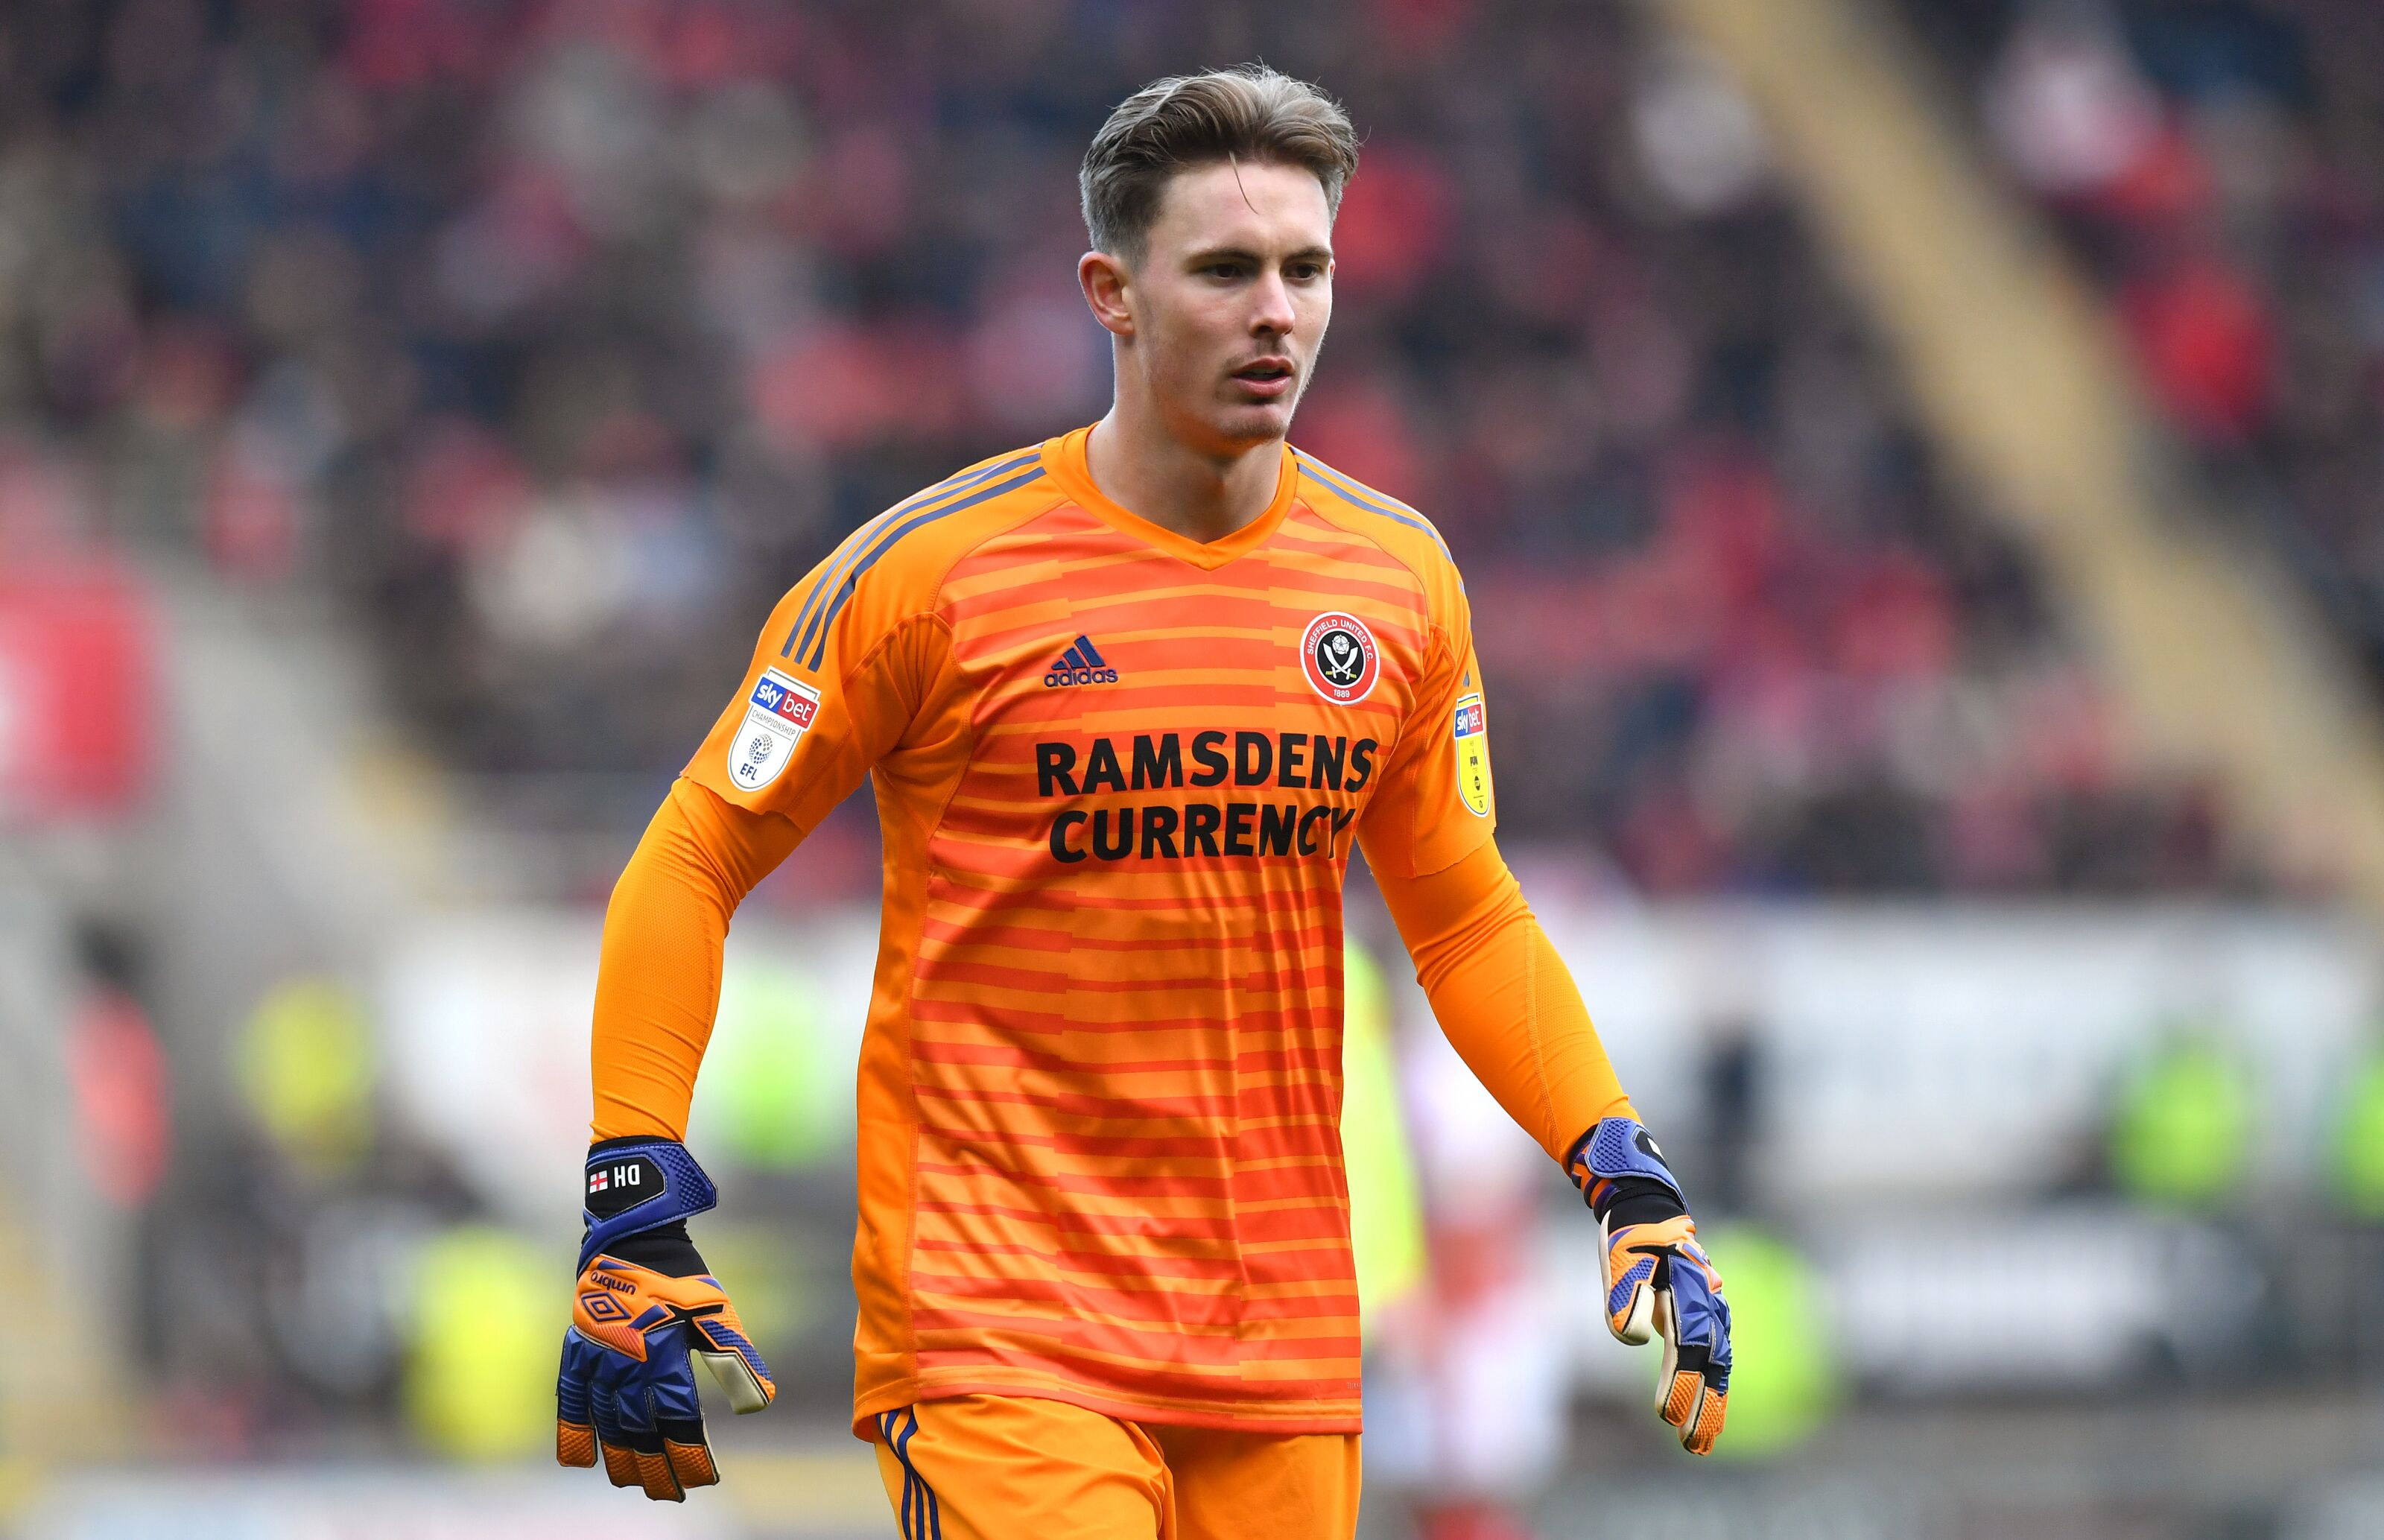 Sheffield United goalkeeper Dean Henderson Rotherham United v. Sheffield United - Sky Bet Championship - New York Stadium 24-11-2018. (Photo by Anthony Devlin / EMPICS / PA Images via Getty Images)